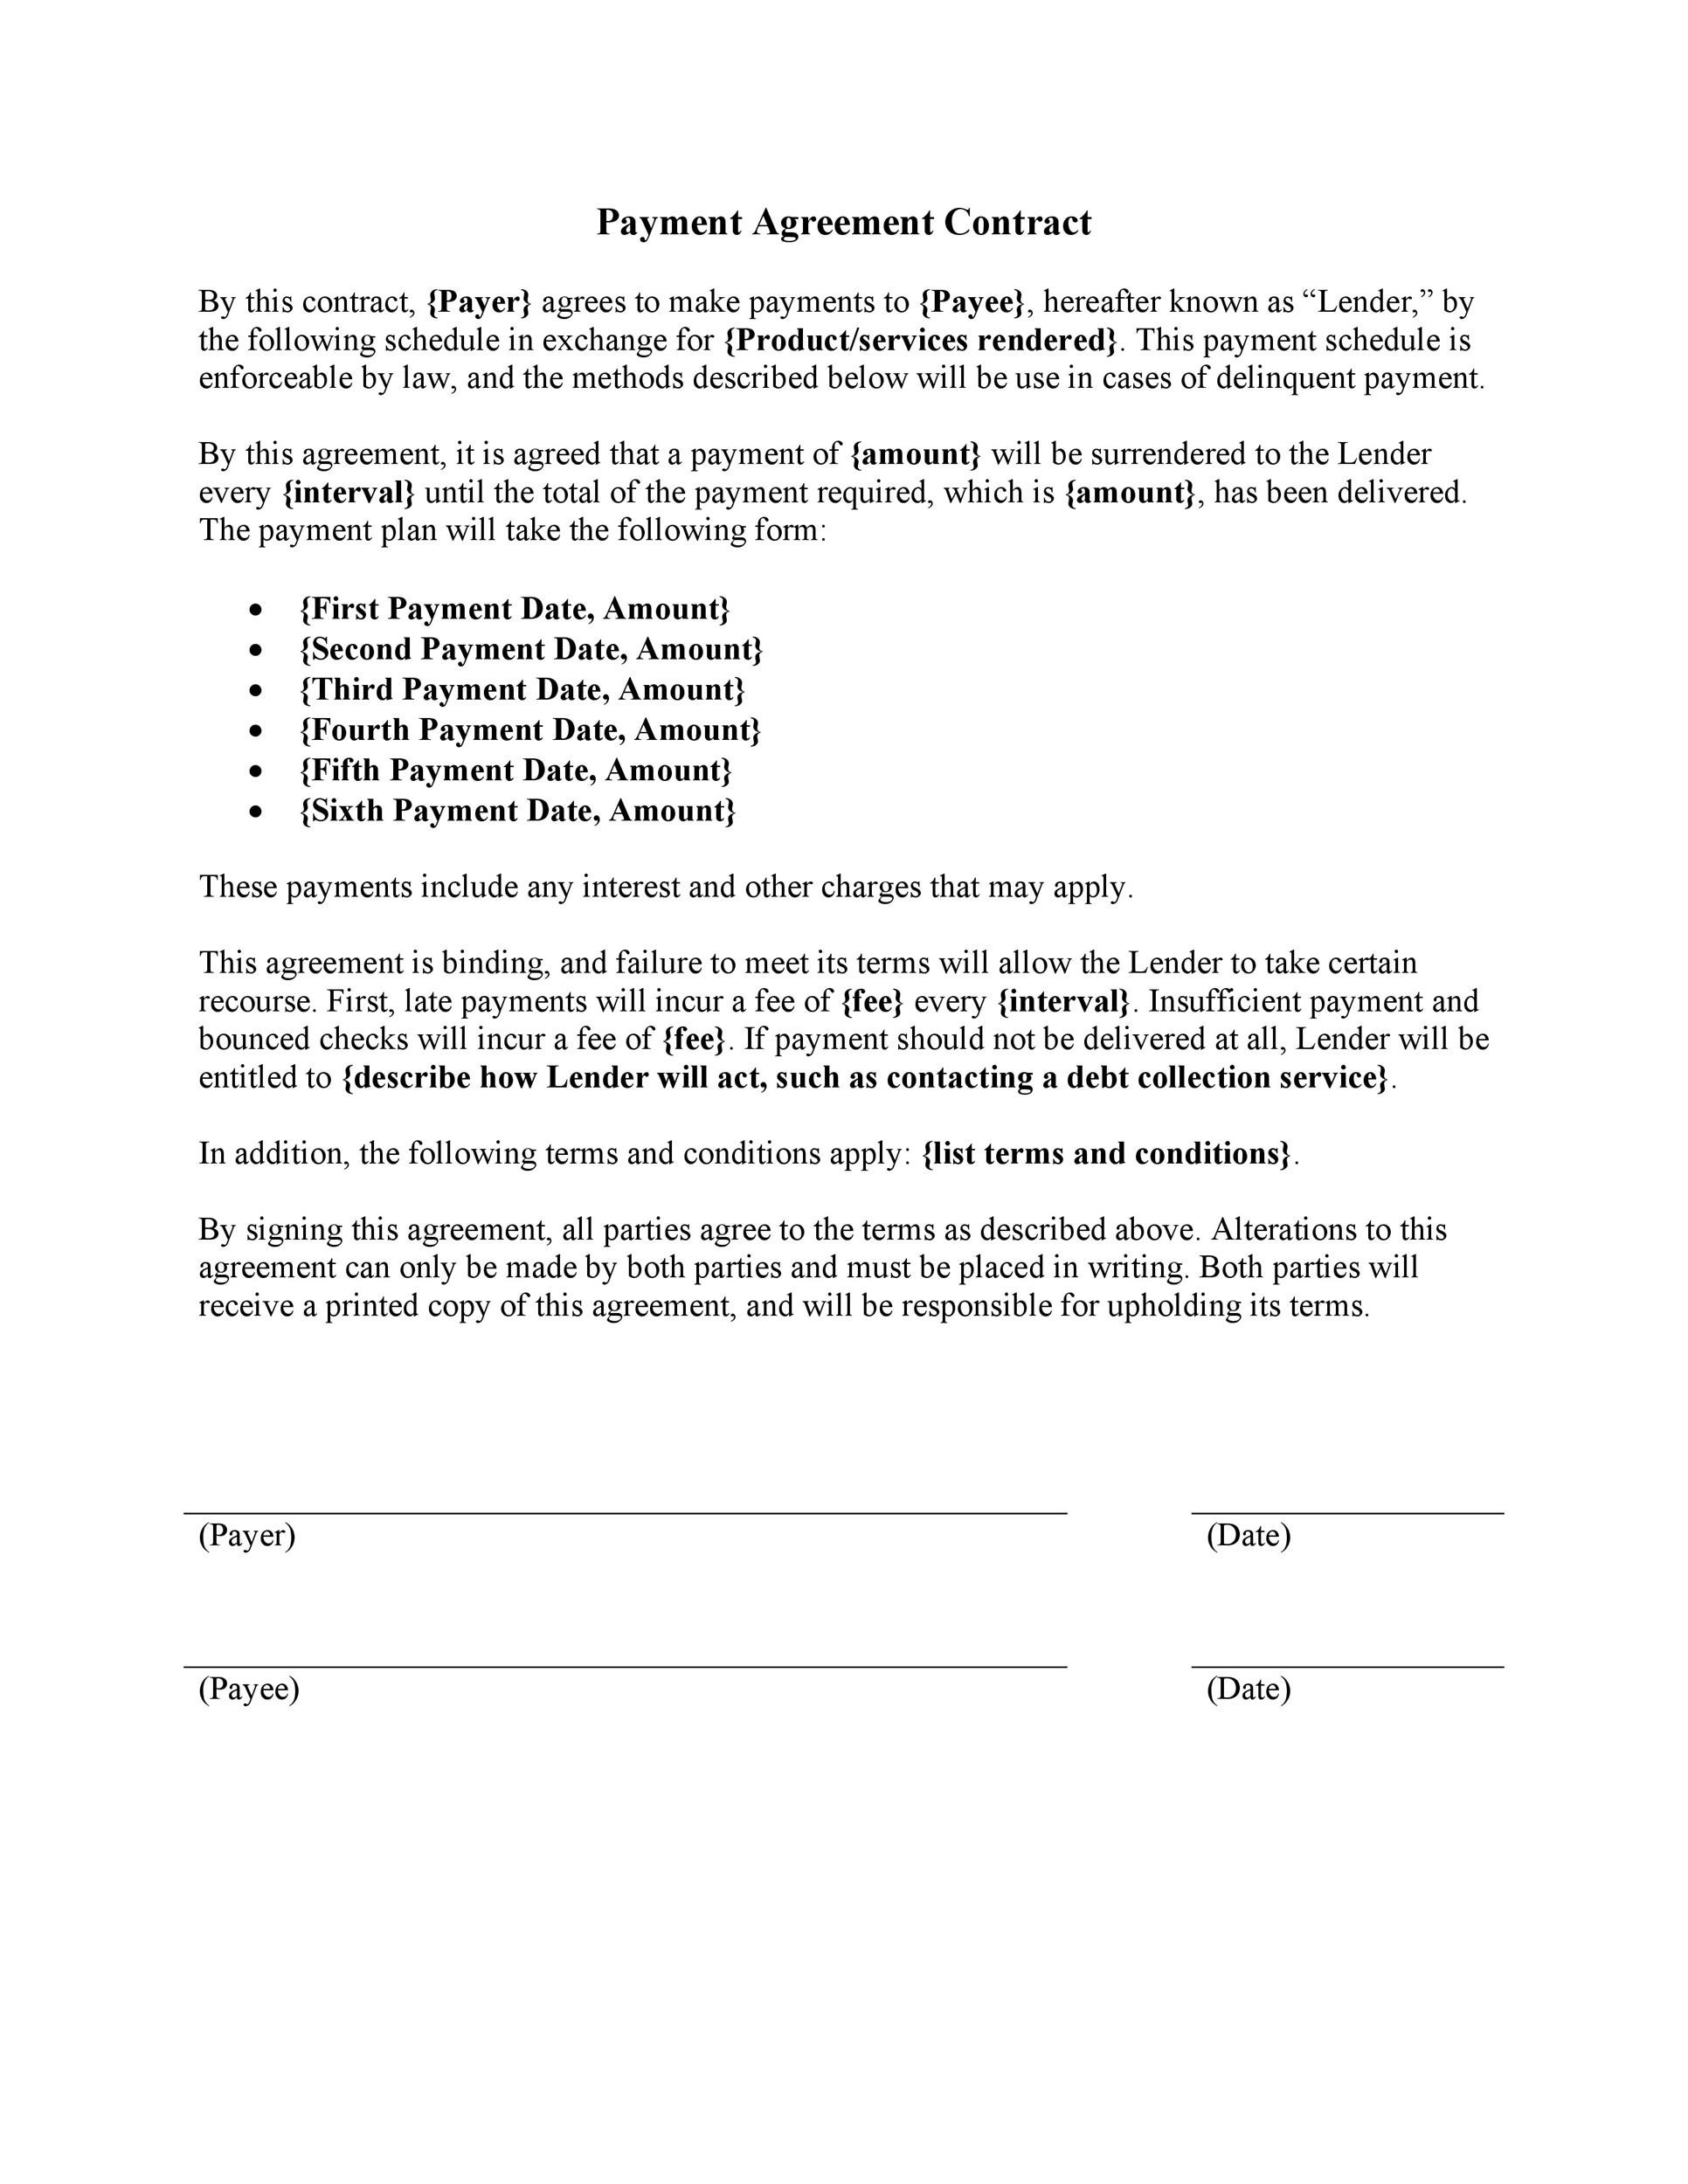 Payment Agreement 40 Templates Contracts ᐅ Template Lab